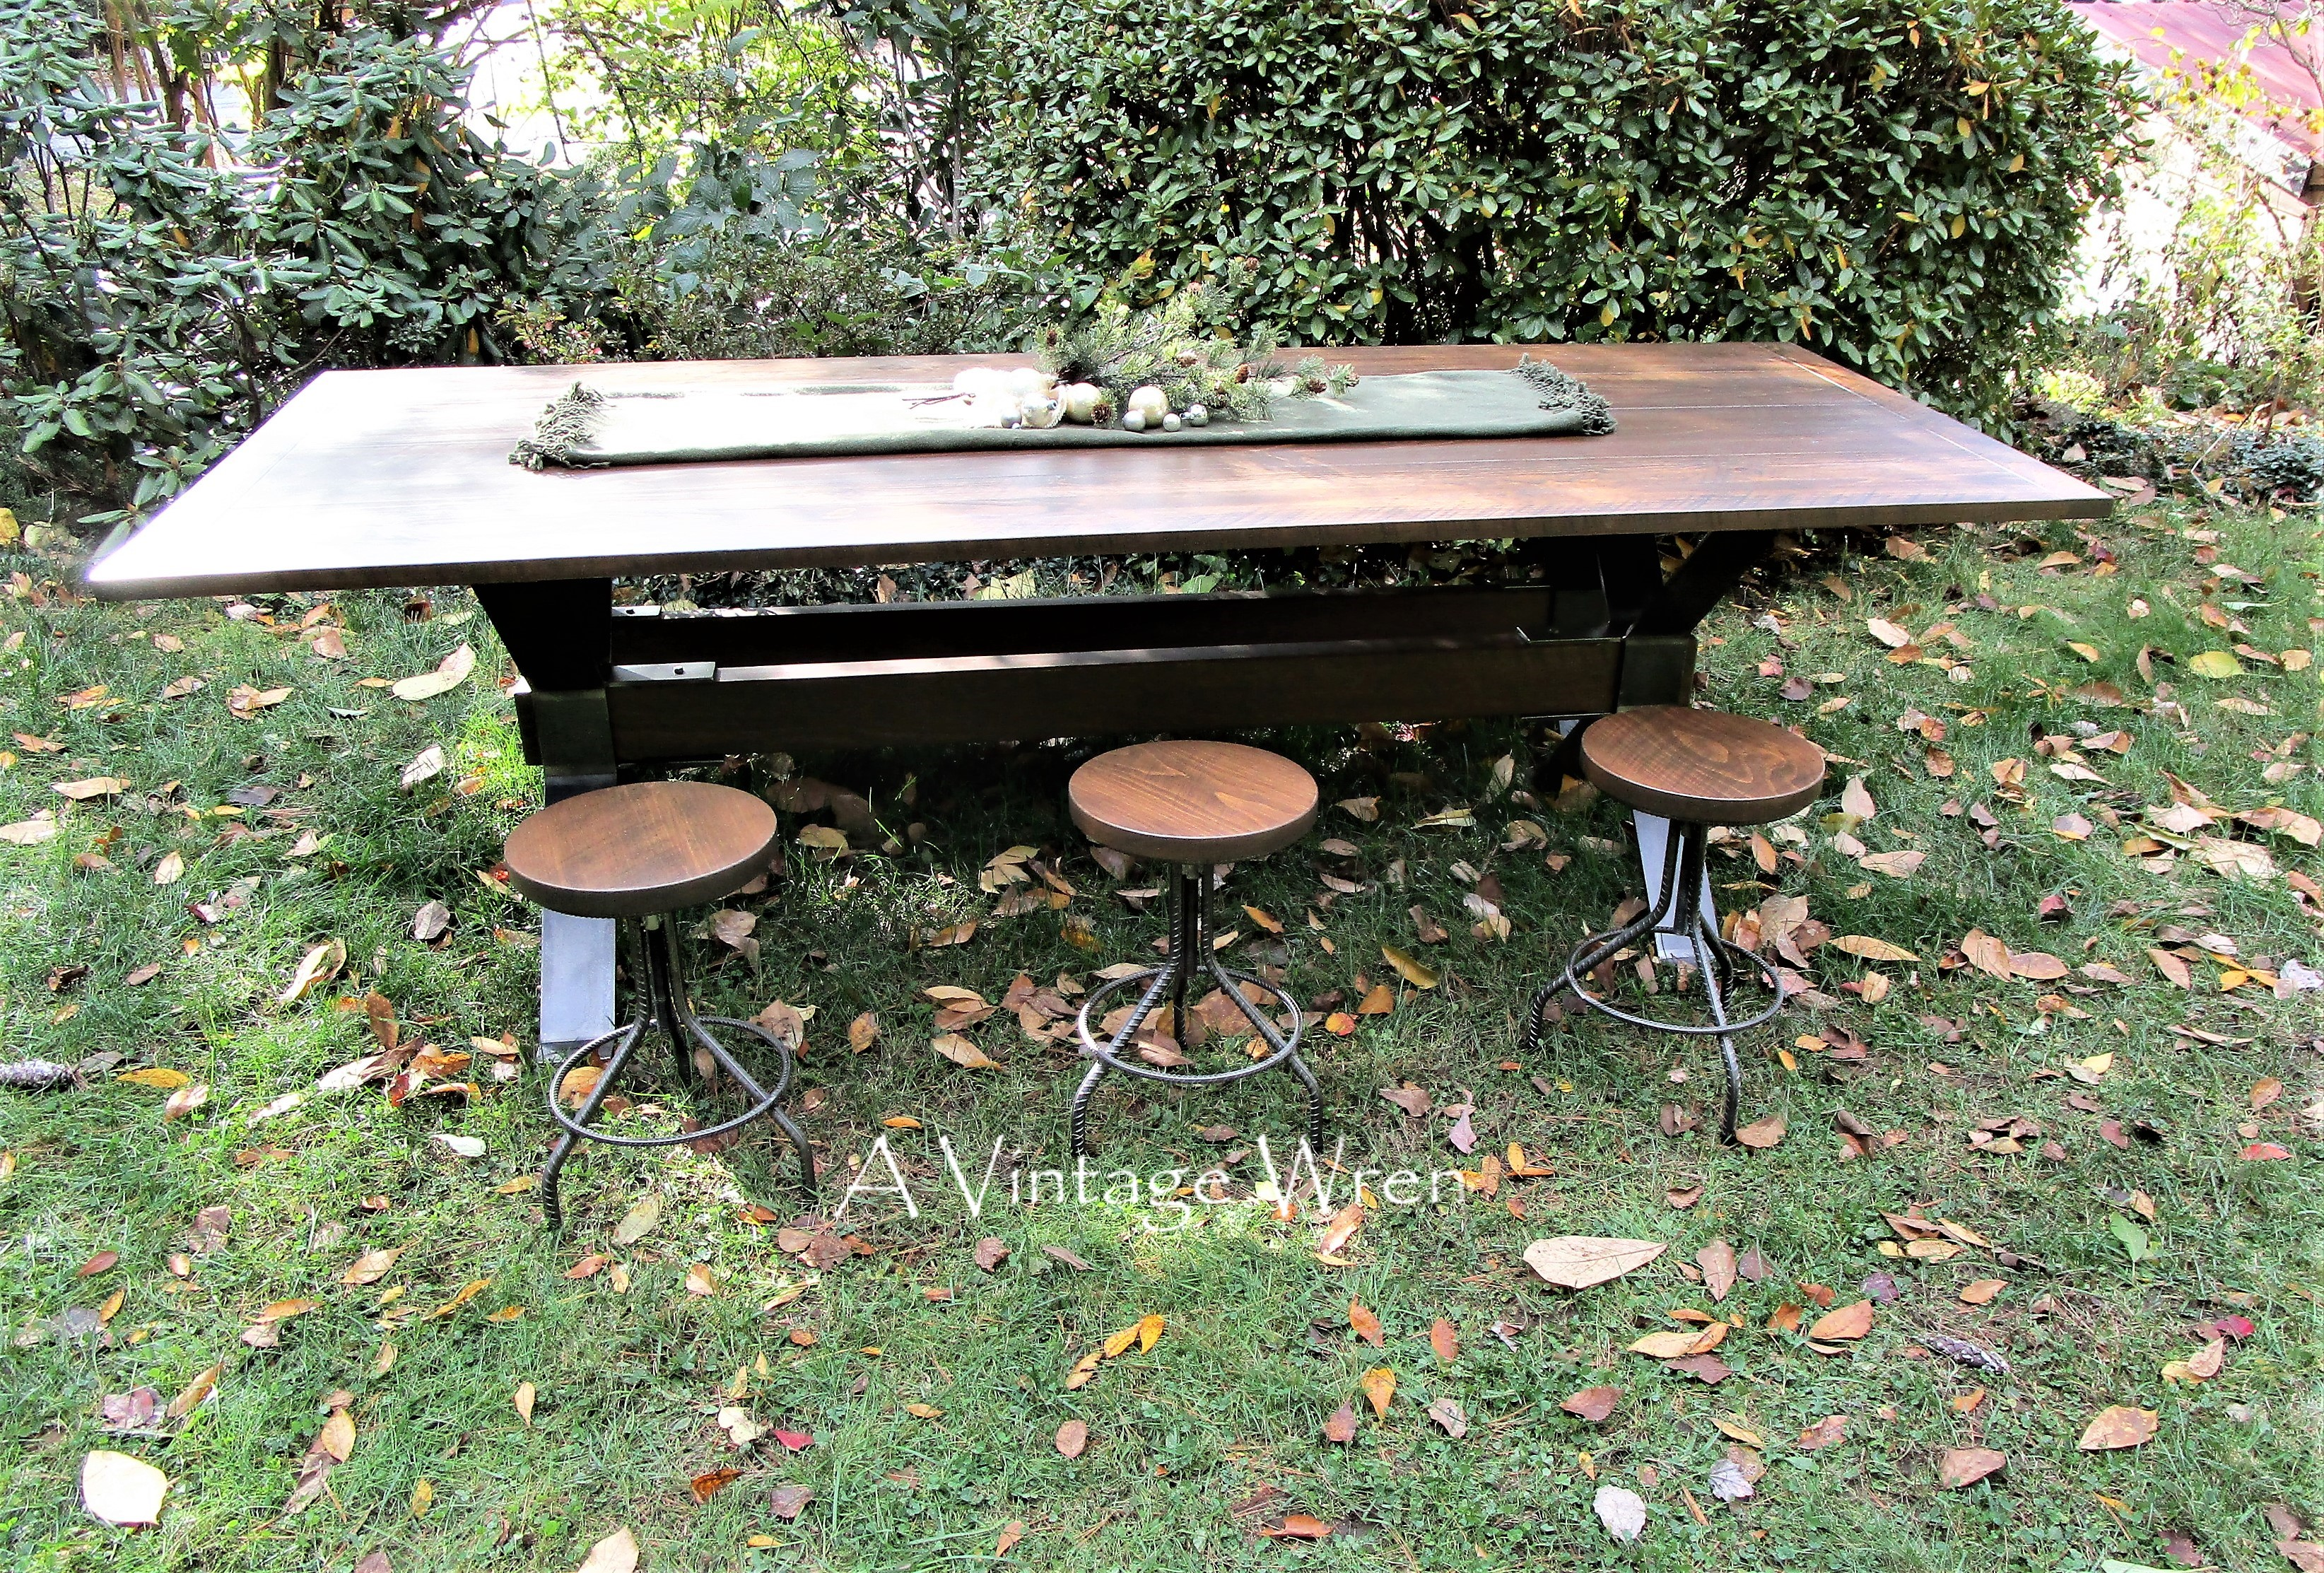 Industrial Dining Table for 8